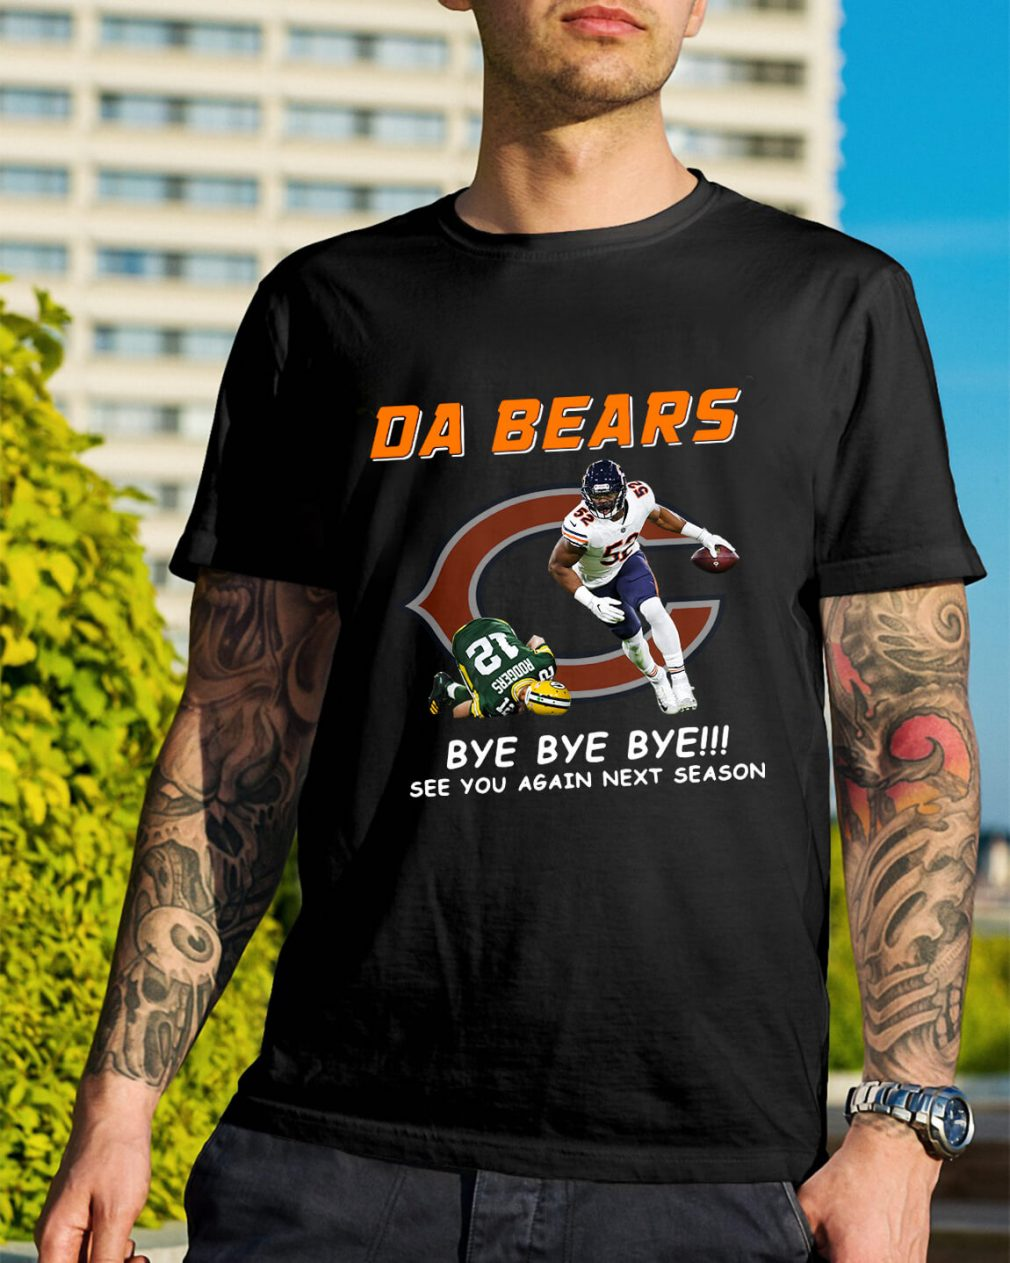 DA Bears bye bye bye see you again next season shirt